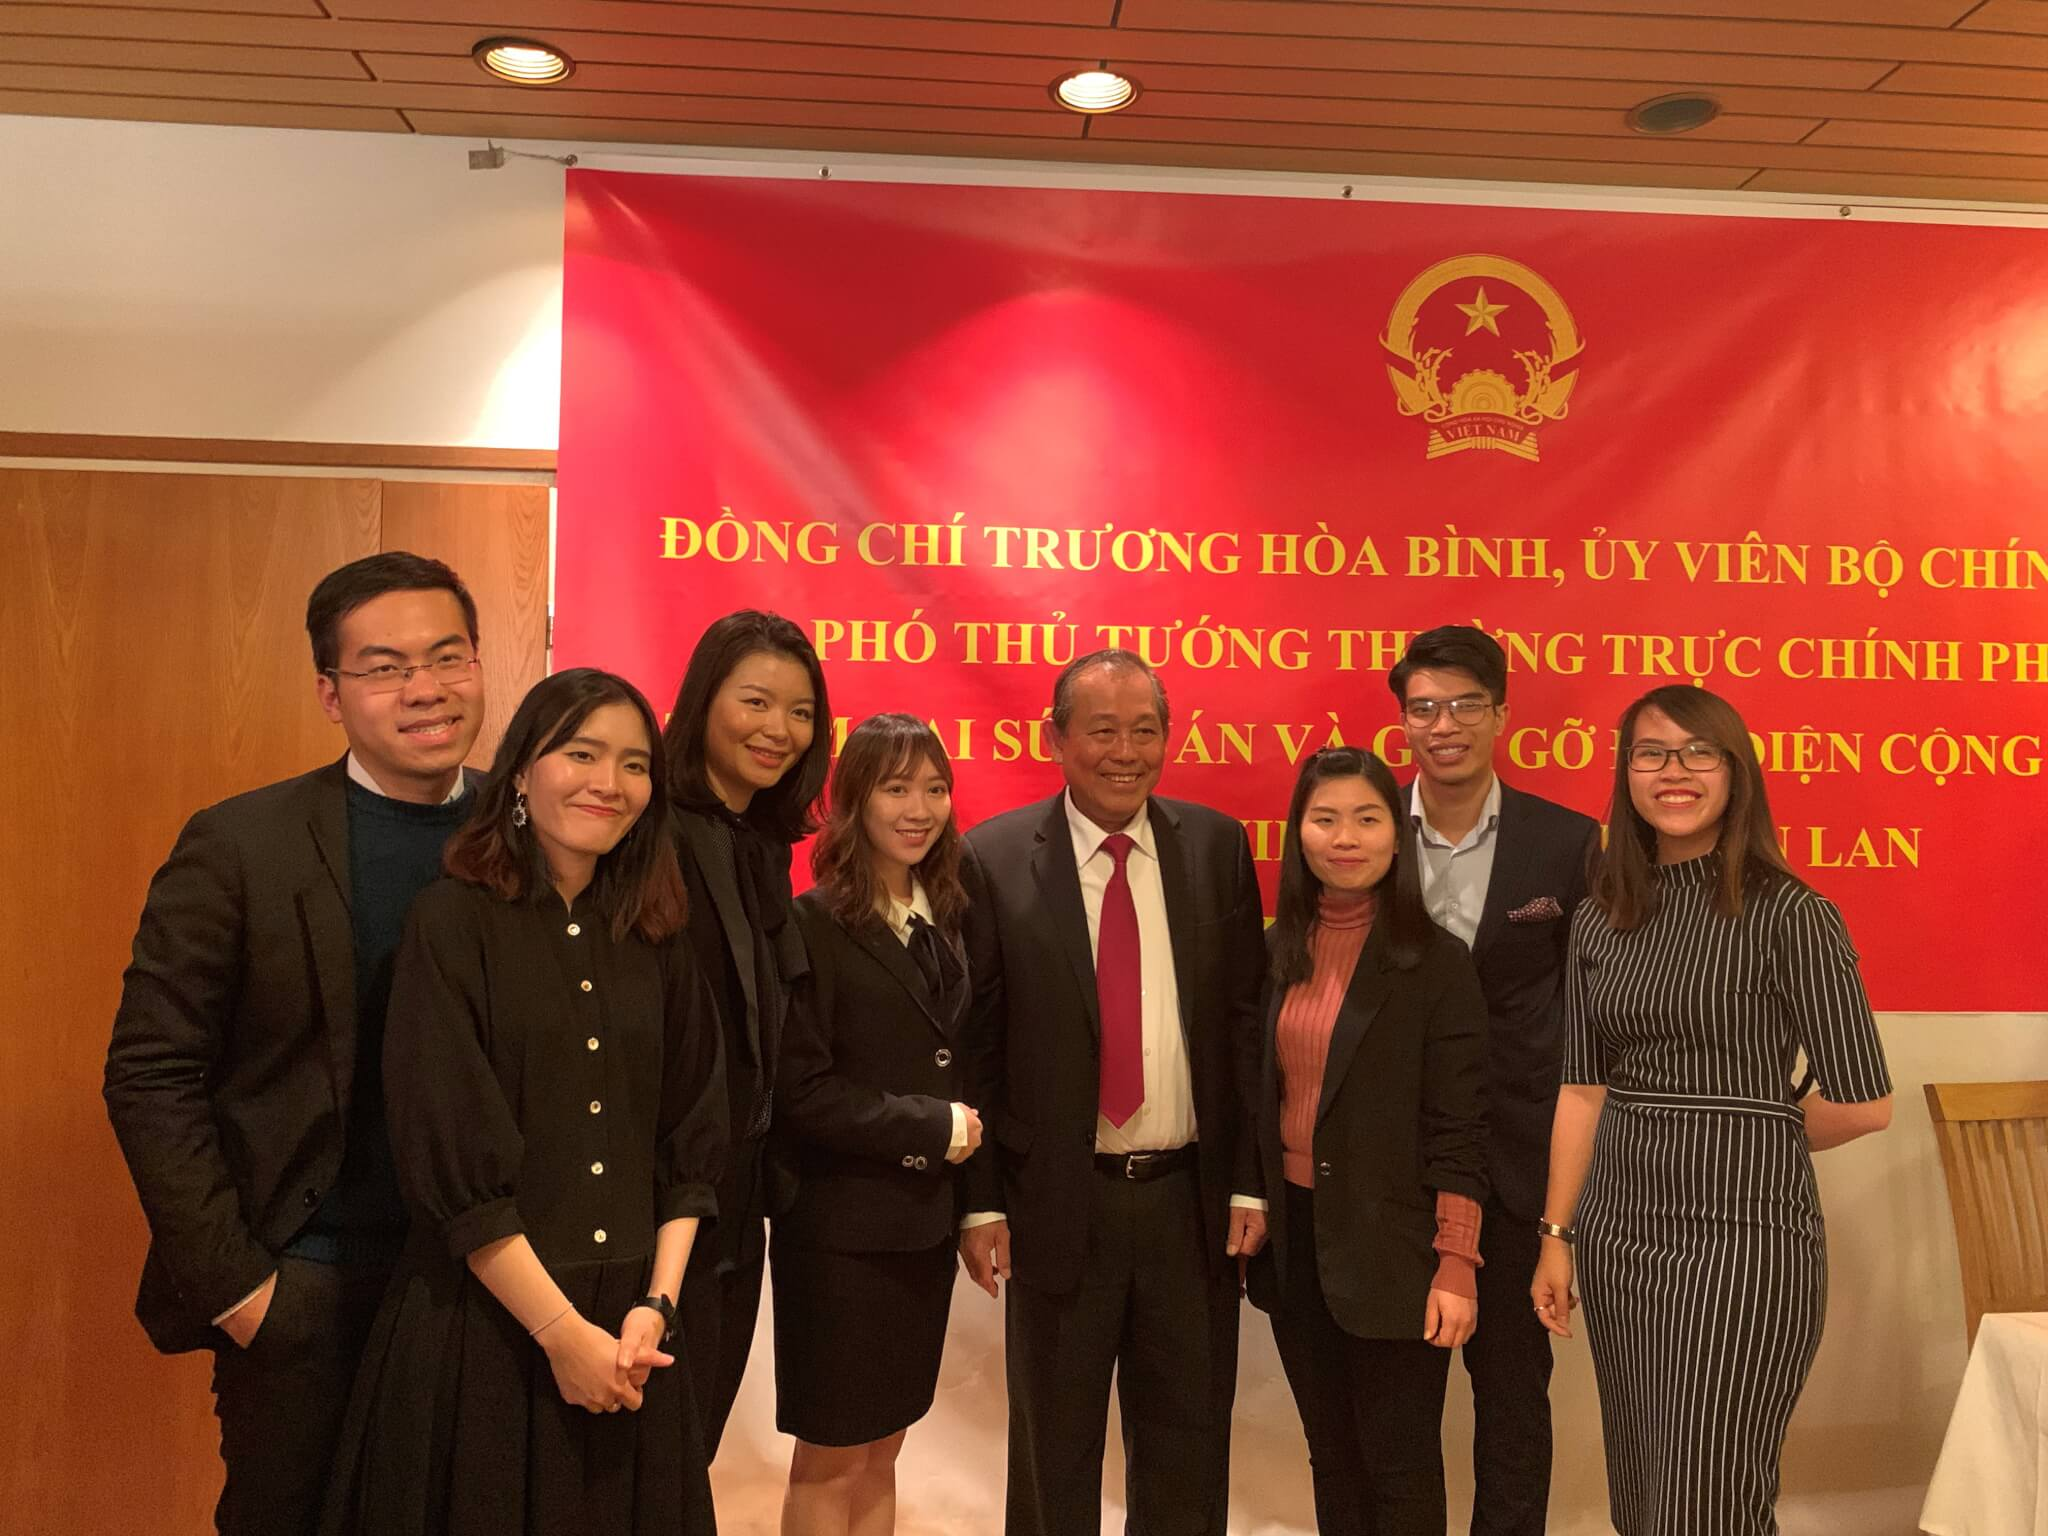 VietES team had the honour to represent the young and ambitious generation to deliver a speech to the Deputy Prime Minister Truong Hoa Binh at Vietnam Embassy in Finland